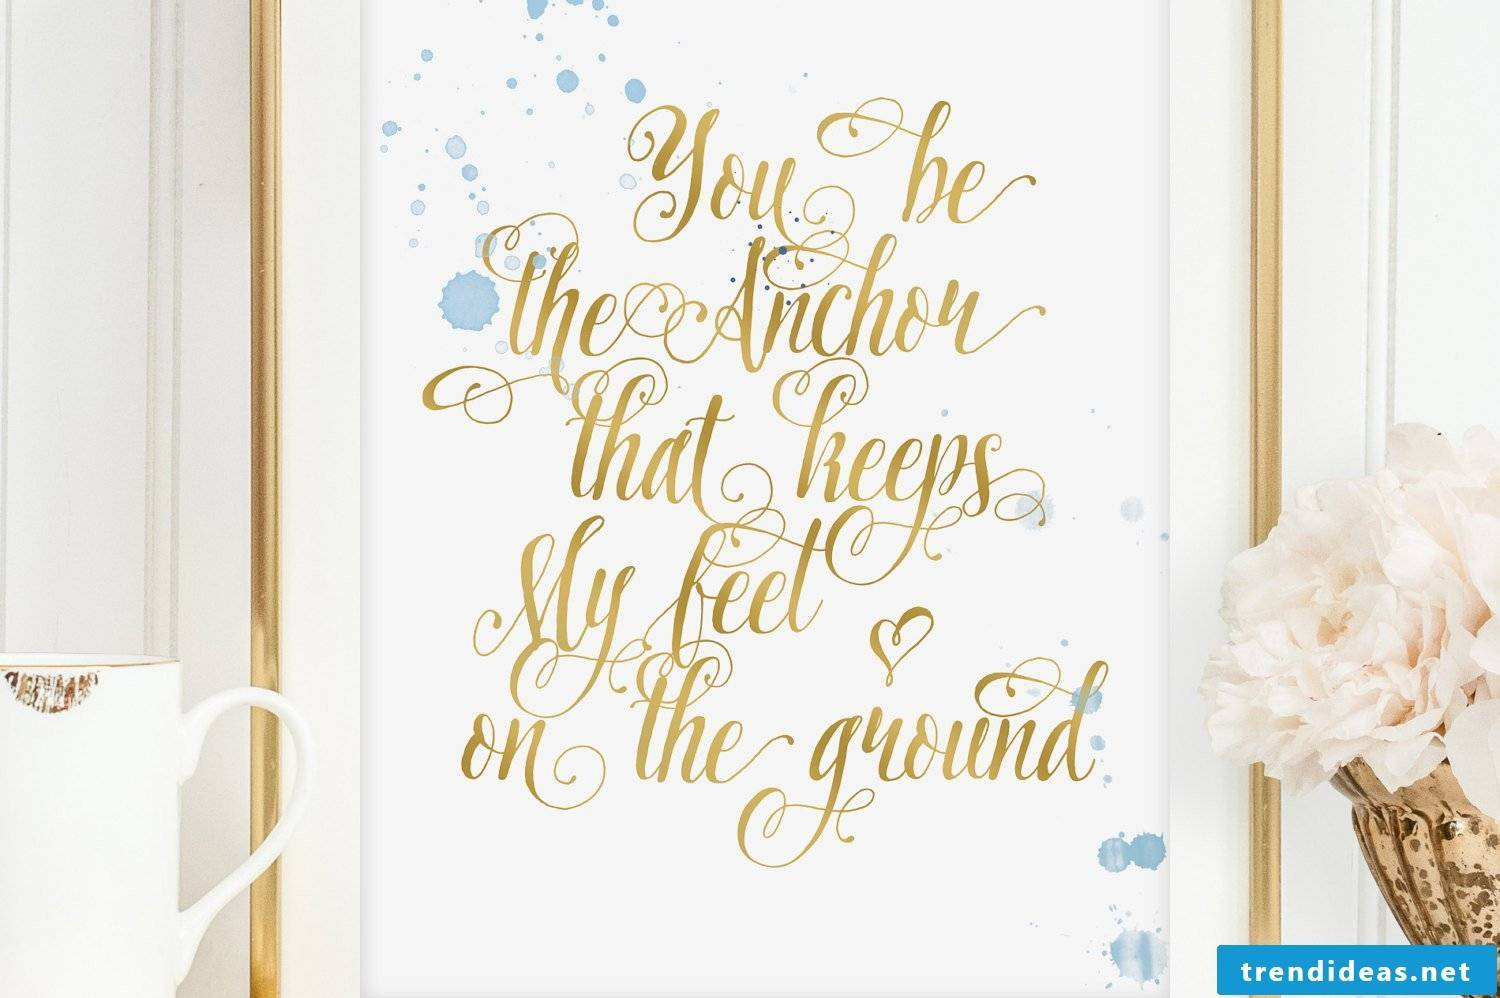 Creative Thinking - Create art for your home with these free ABC fonts